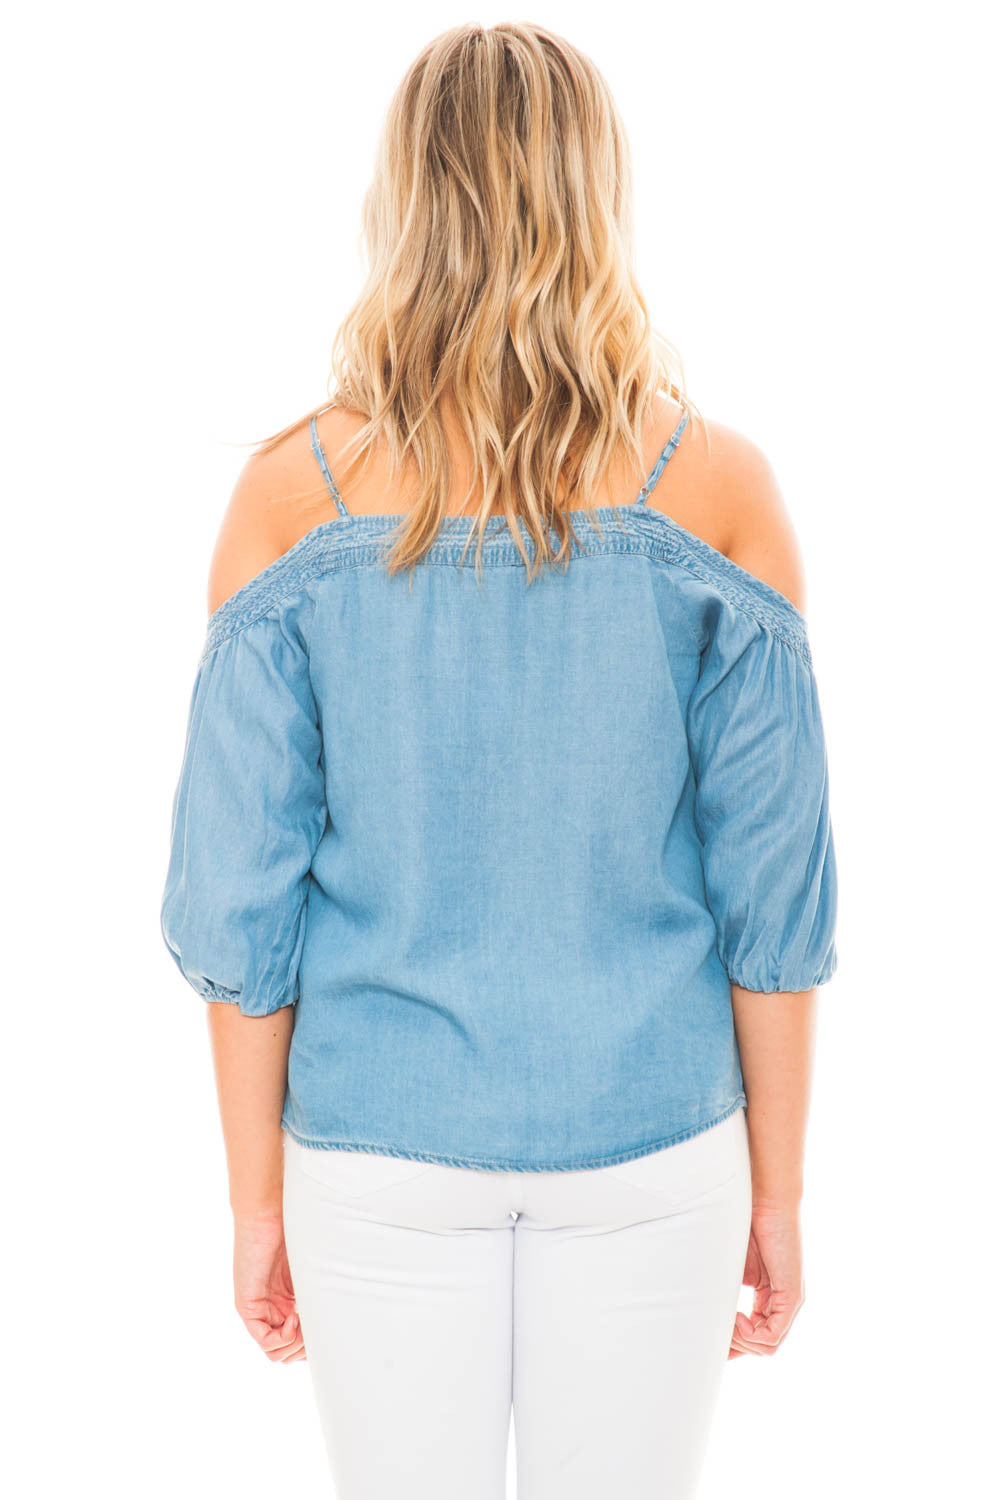 Blouse - Denim Off Shoulder Top With Stitching Detail